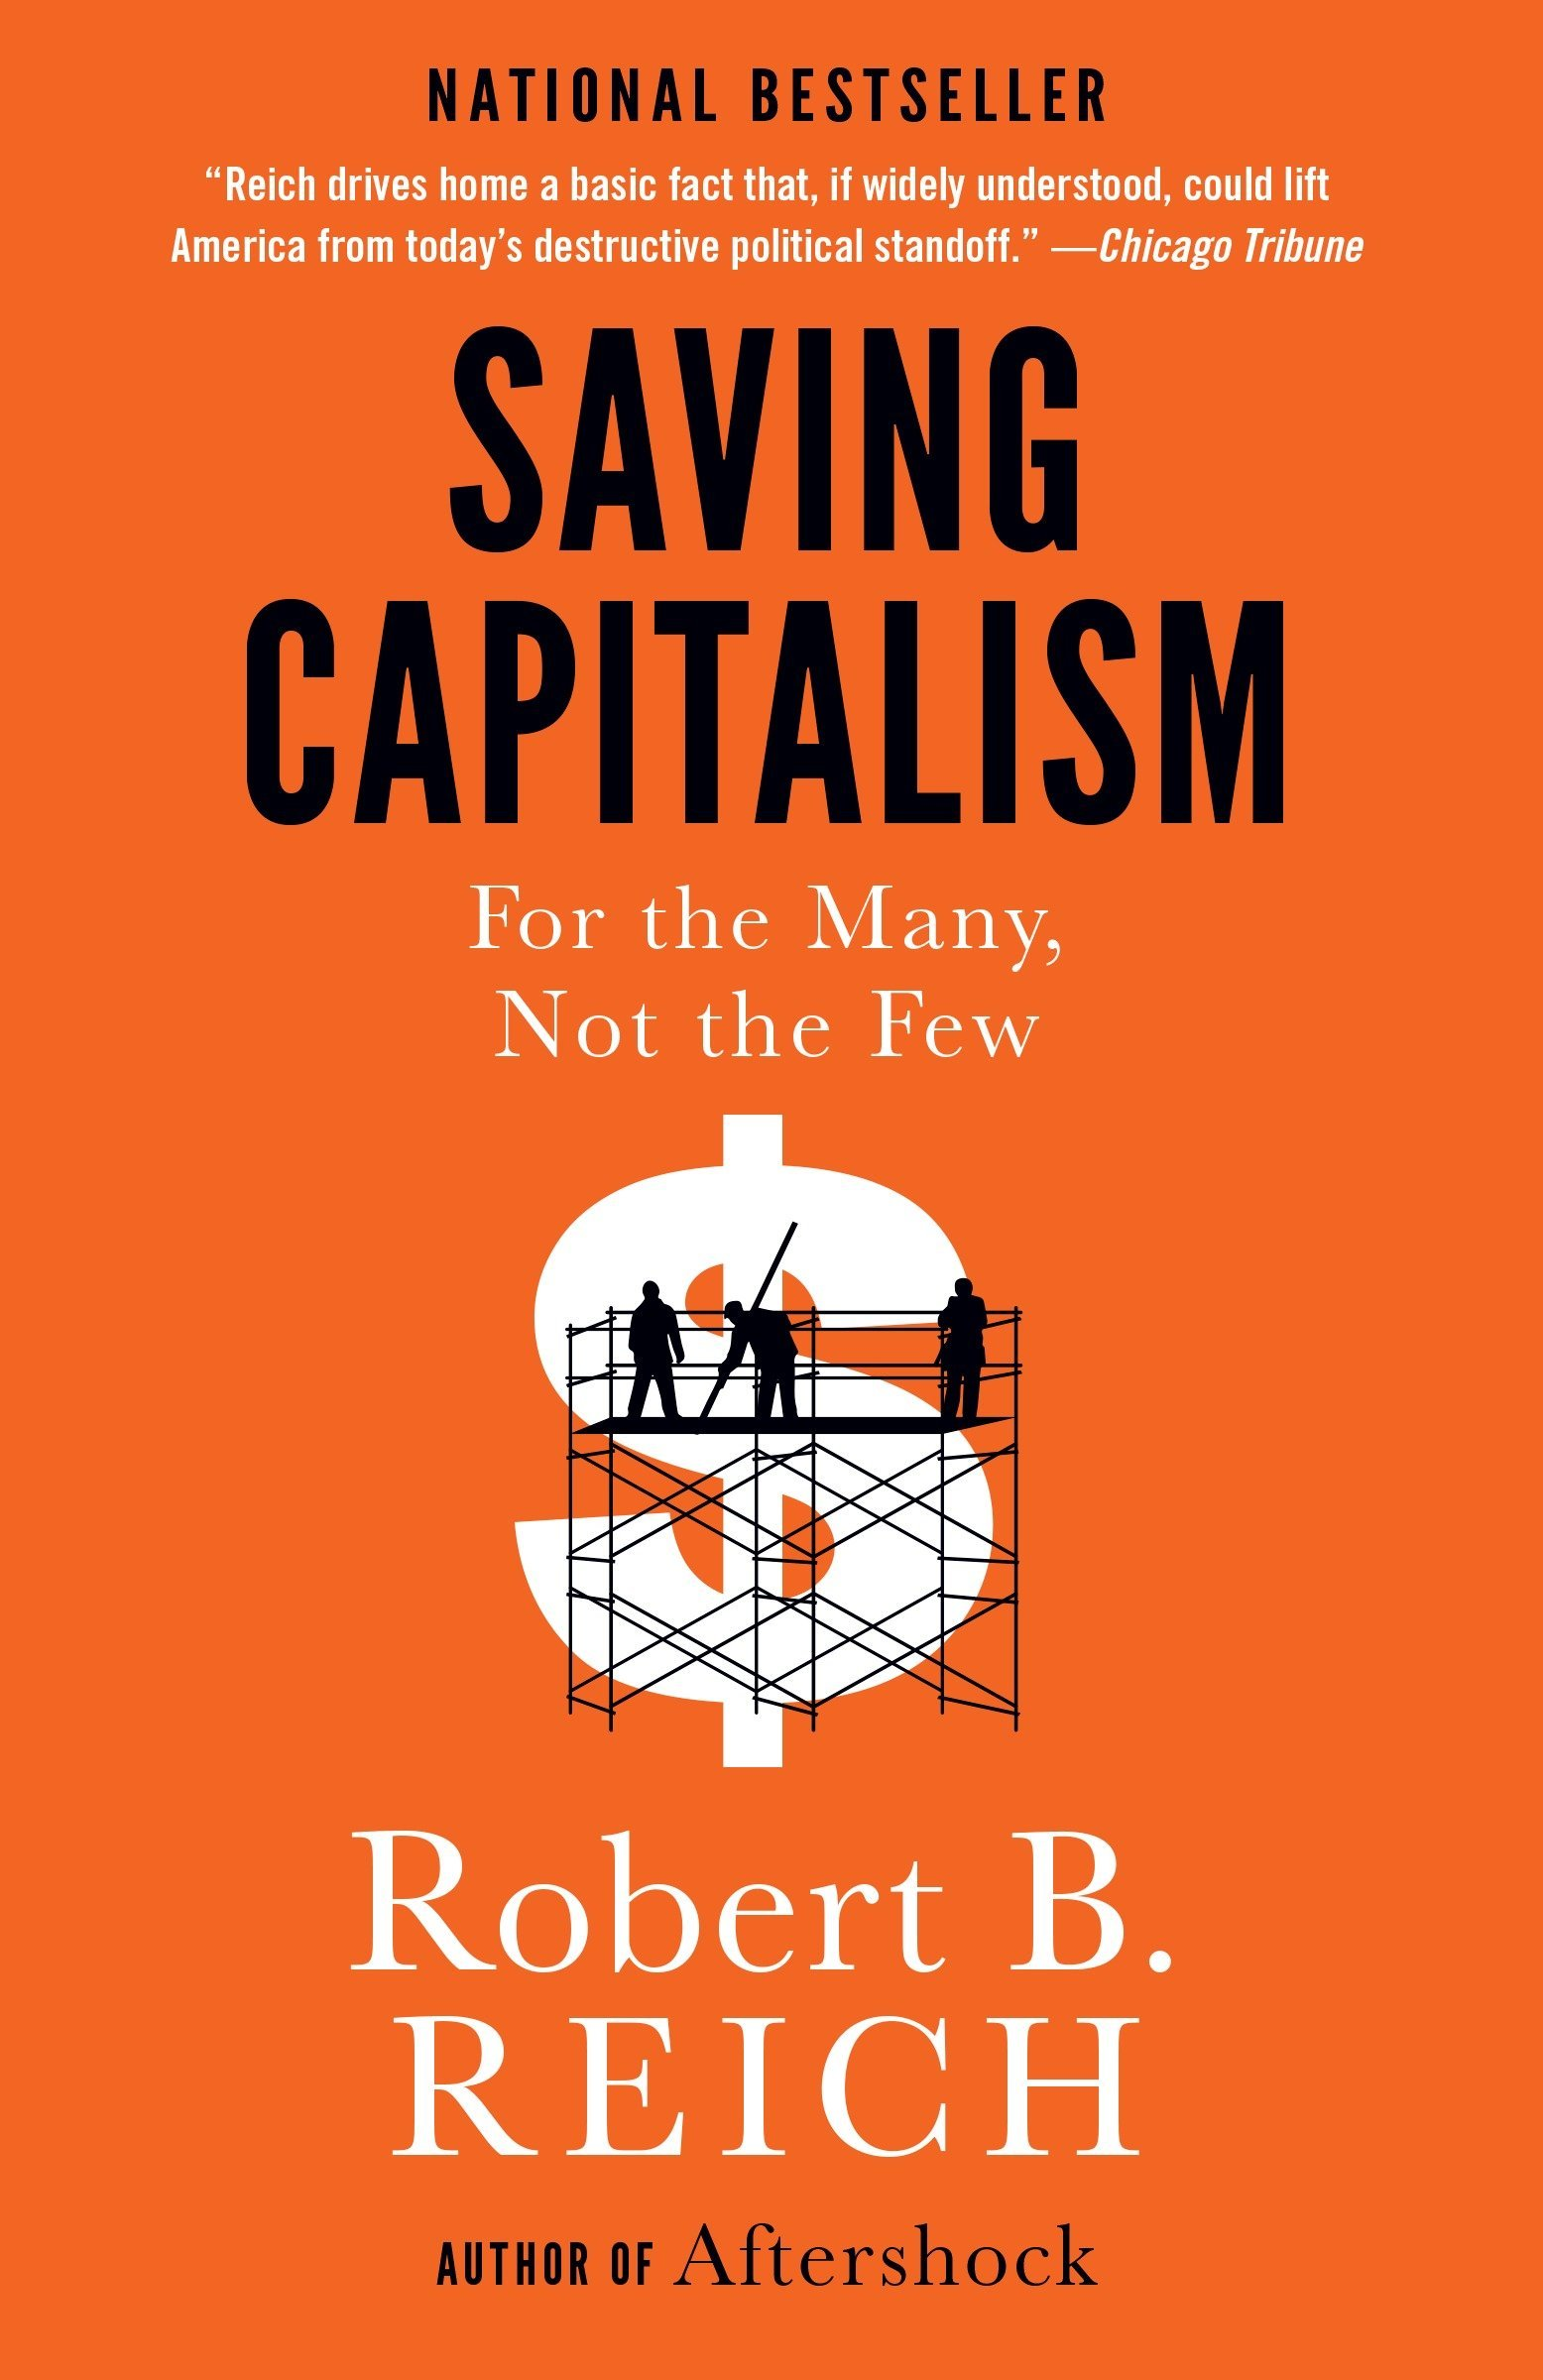 Robert B. Reich – Saving Capitalism: For the Many, Not the Few